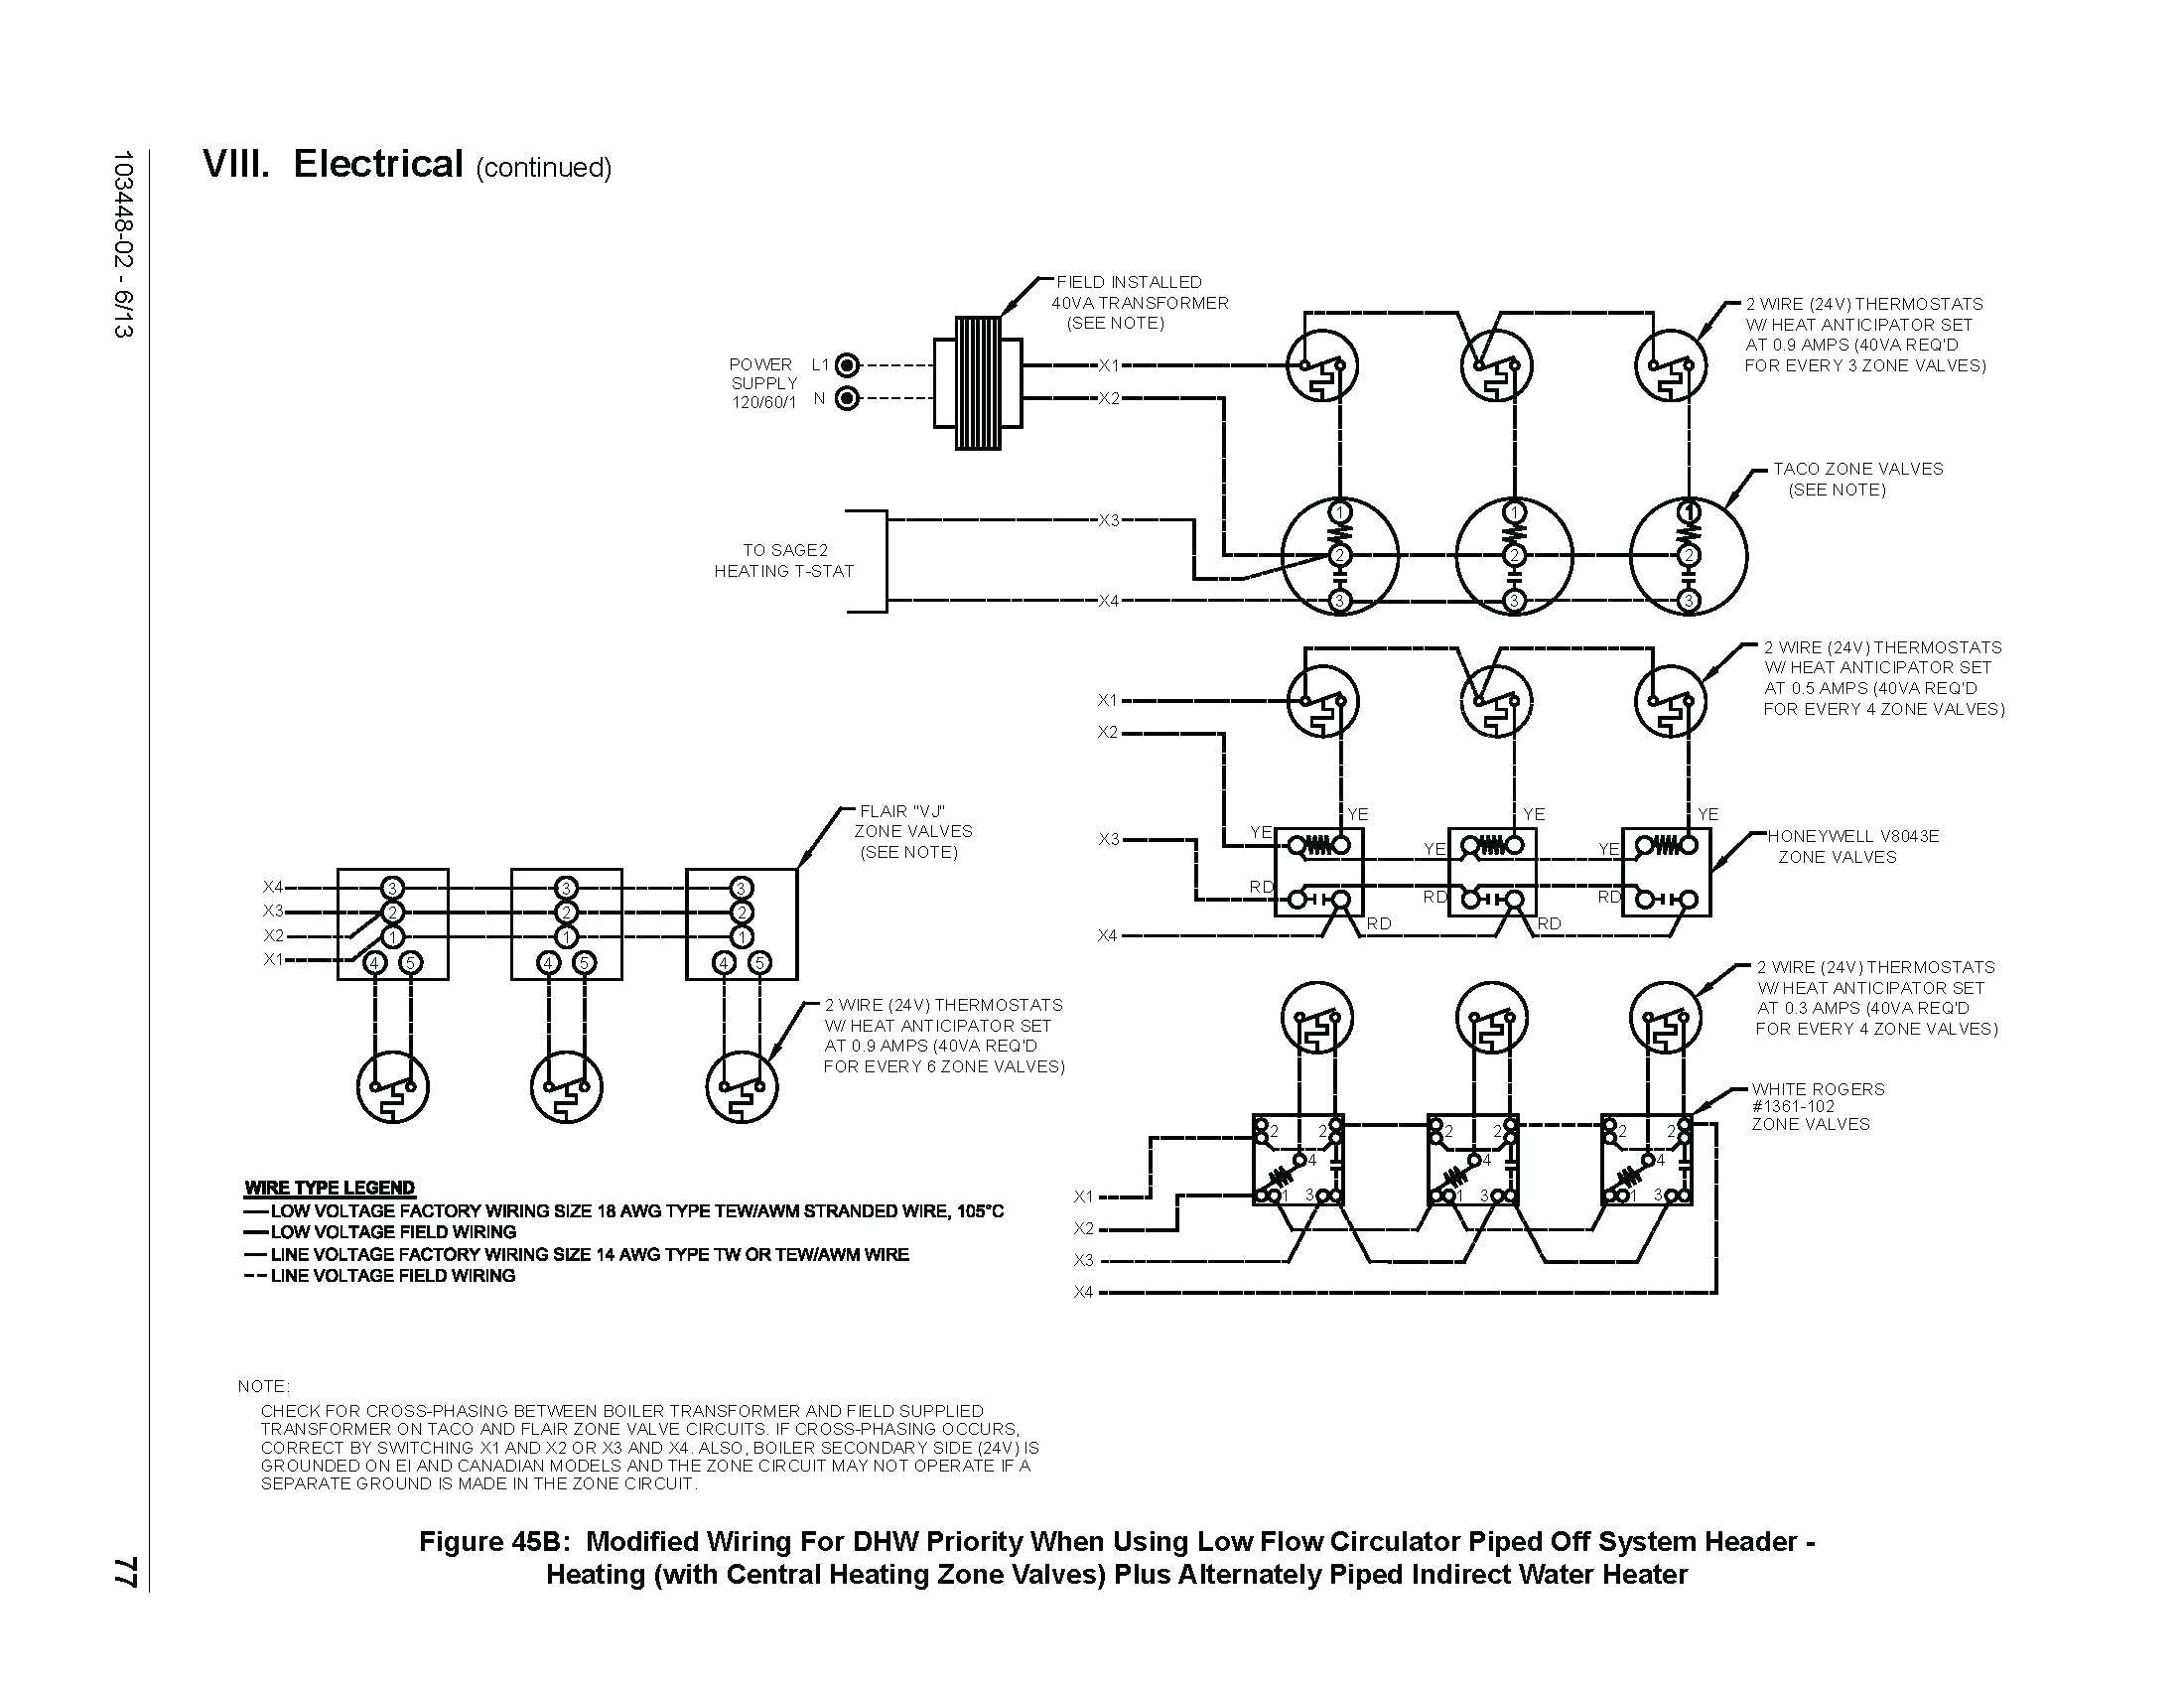 Diagram Of Car Heating System Wiring Diagram for Immersion Heater Copy Central Heating thermostat Of Diagram Of Car Heating System